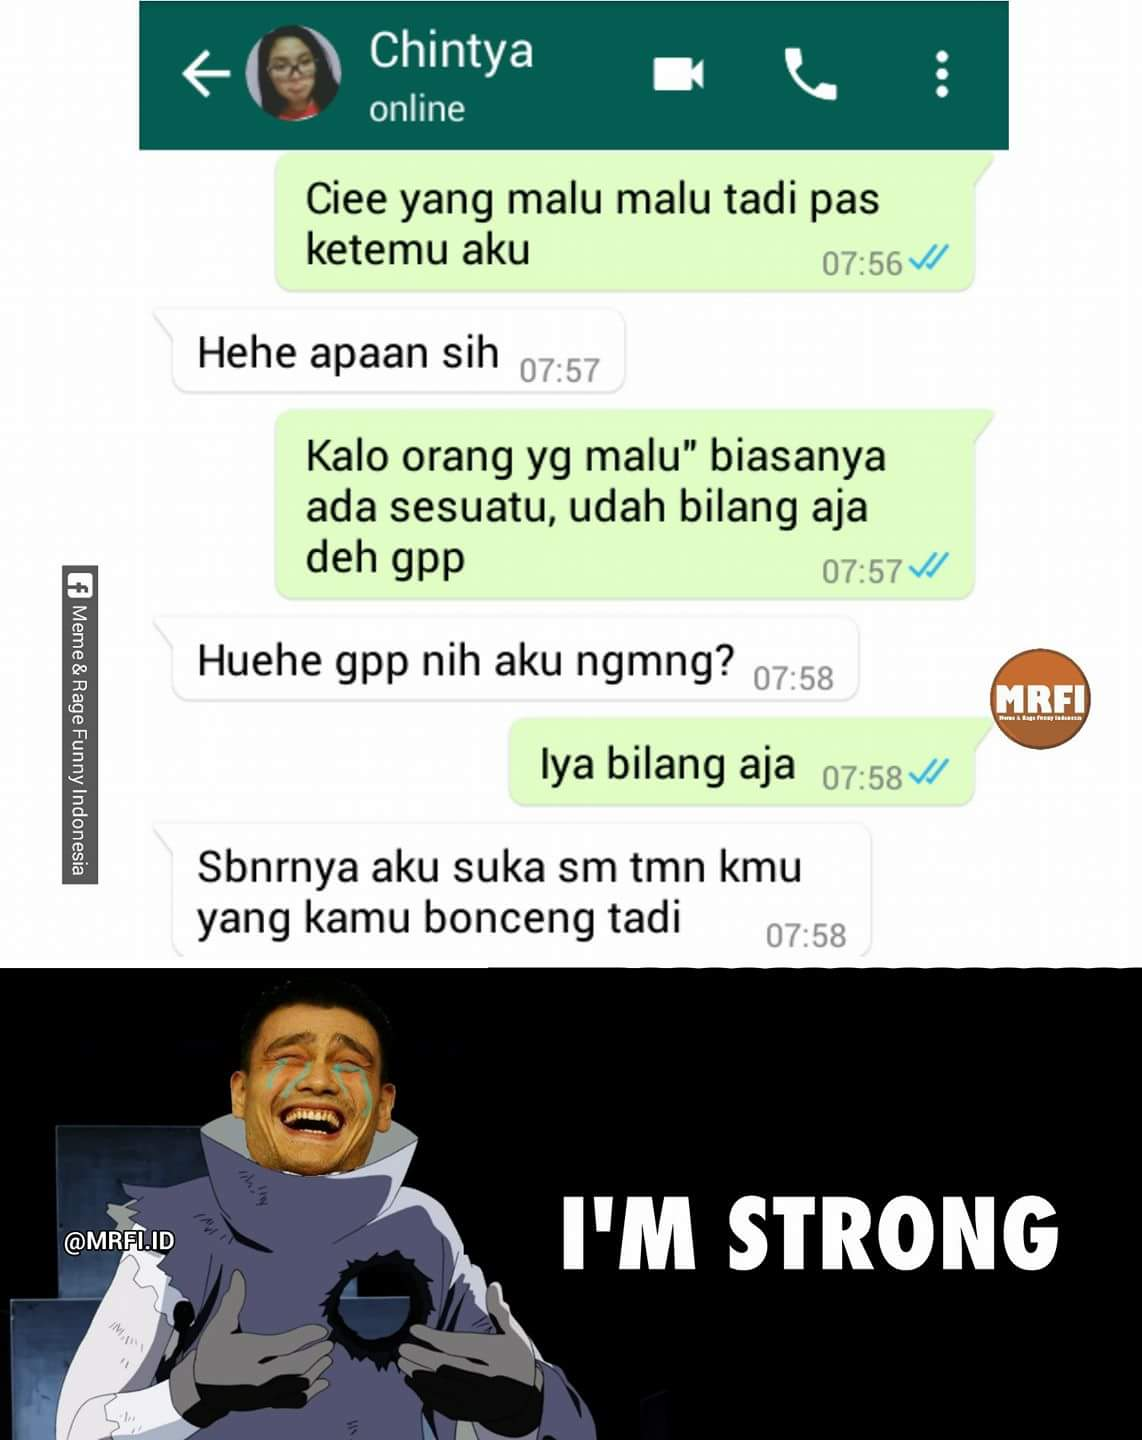 Iam Strong